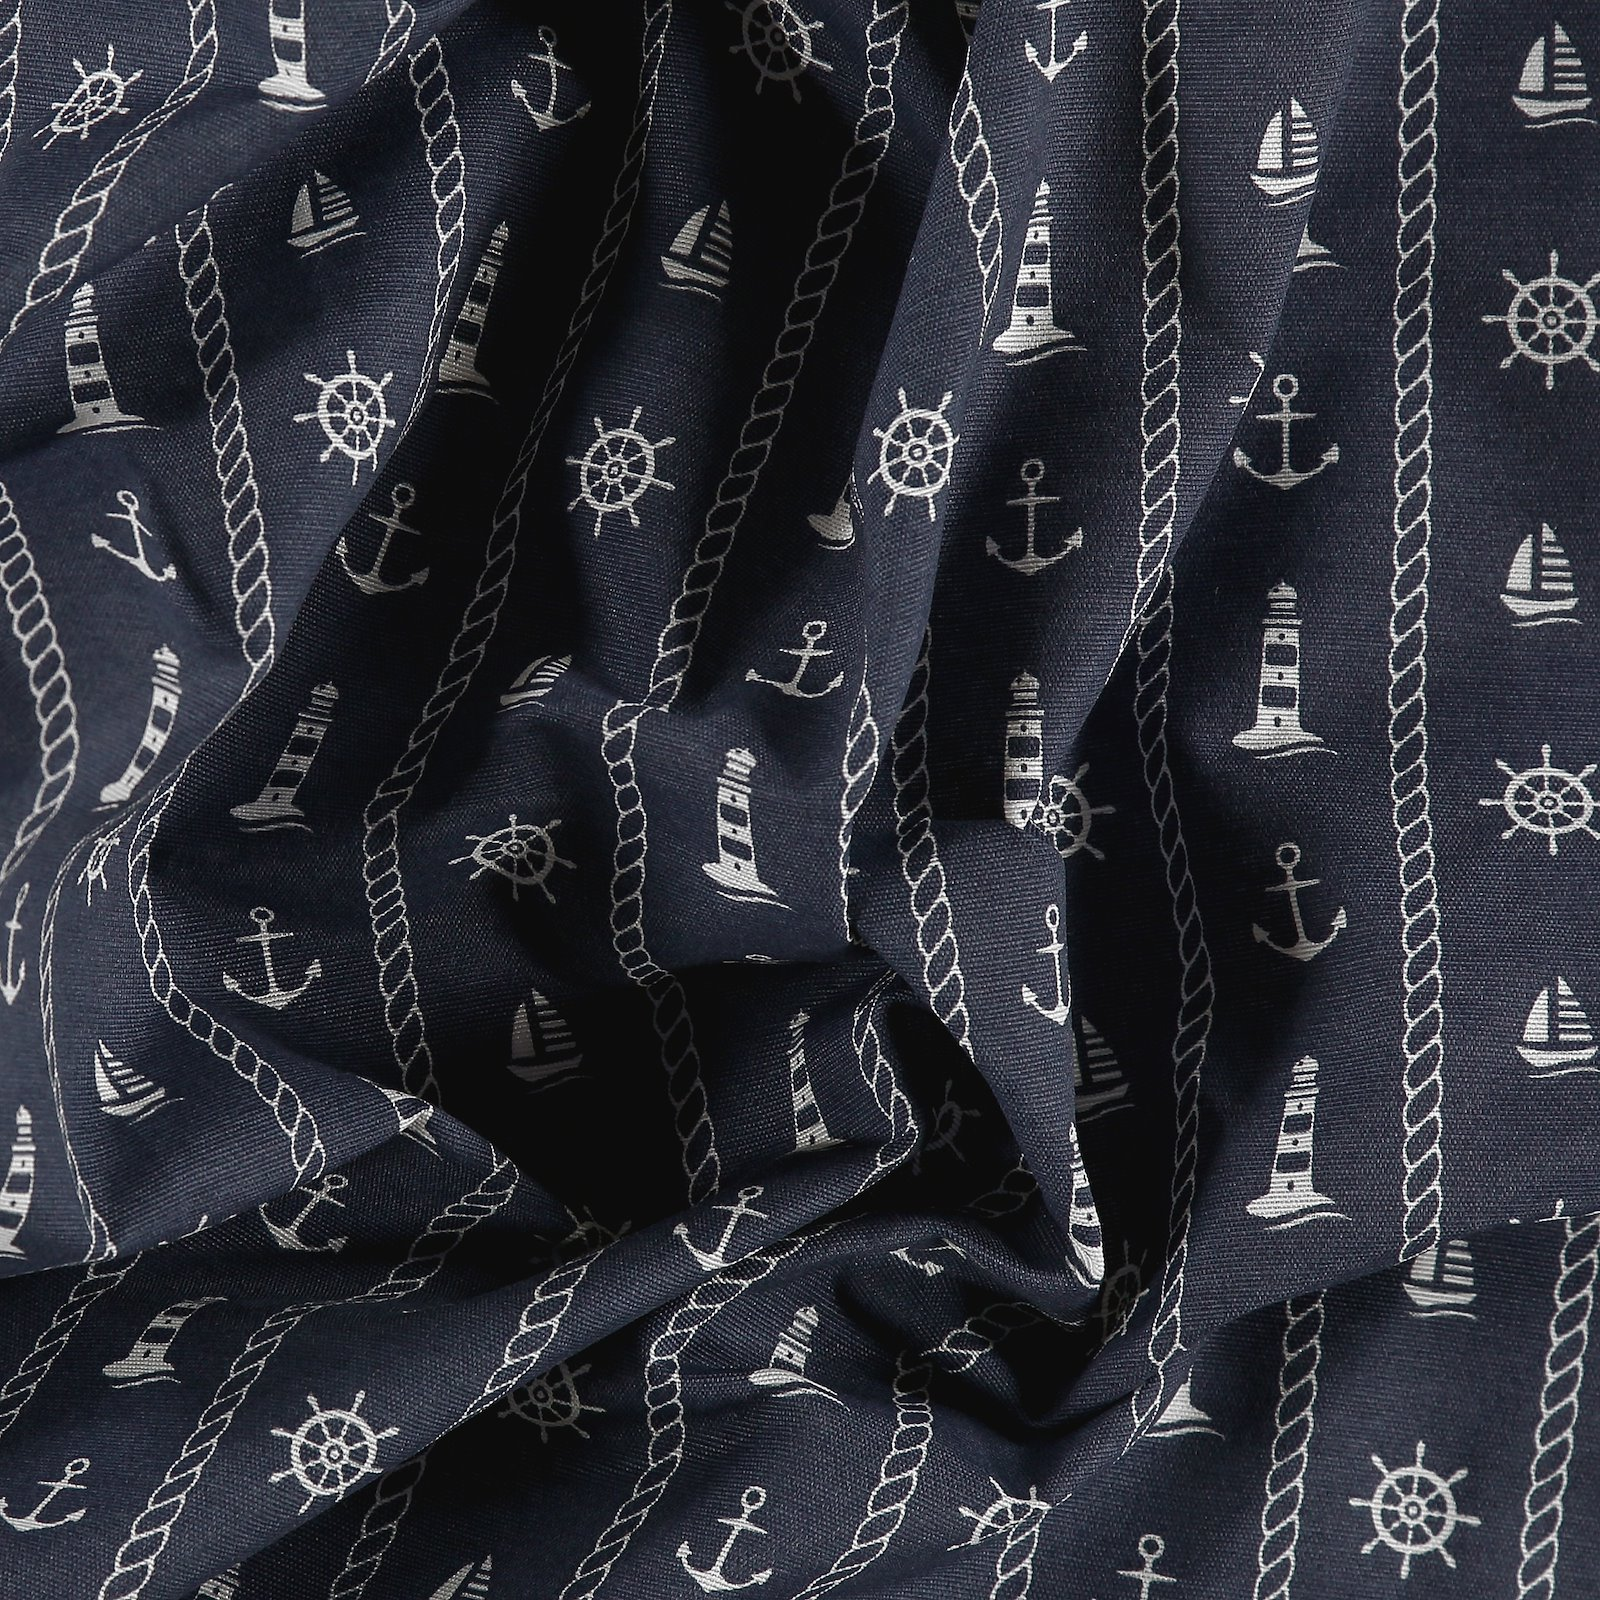 Woven navy with maritime print 750369_pack